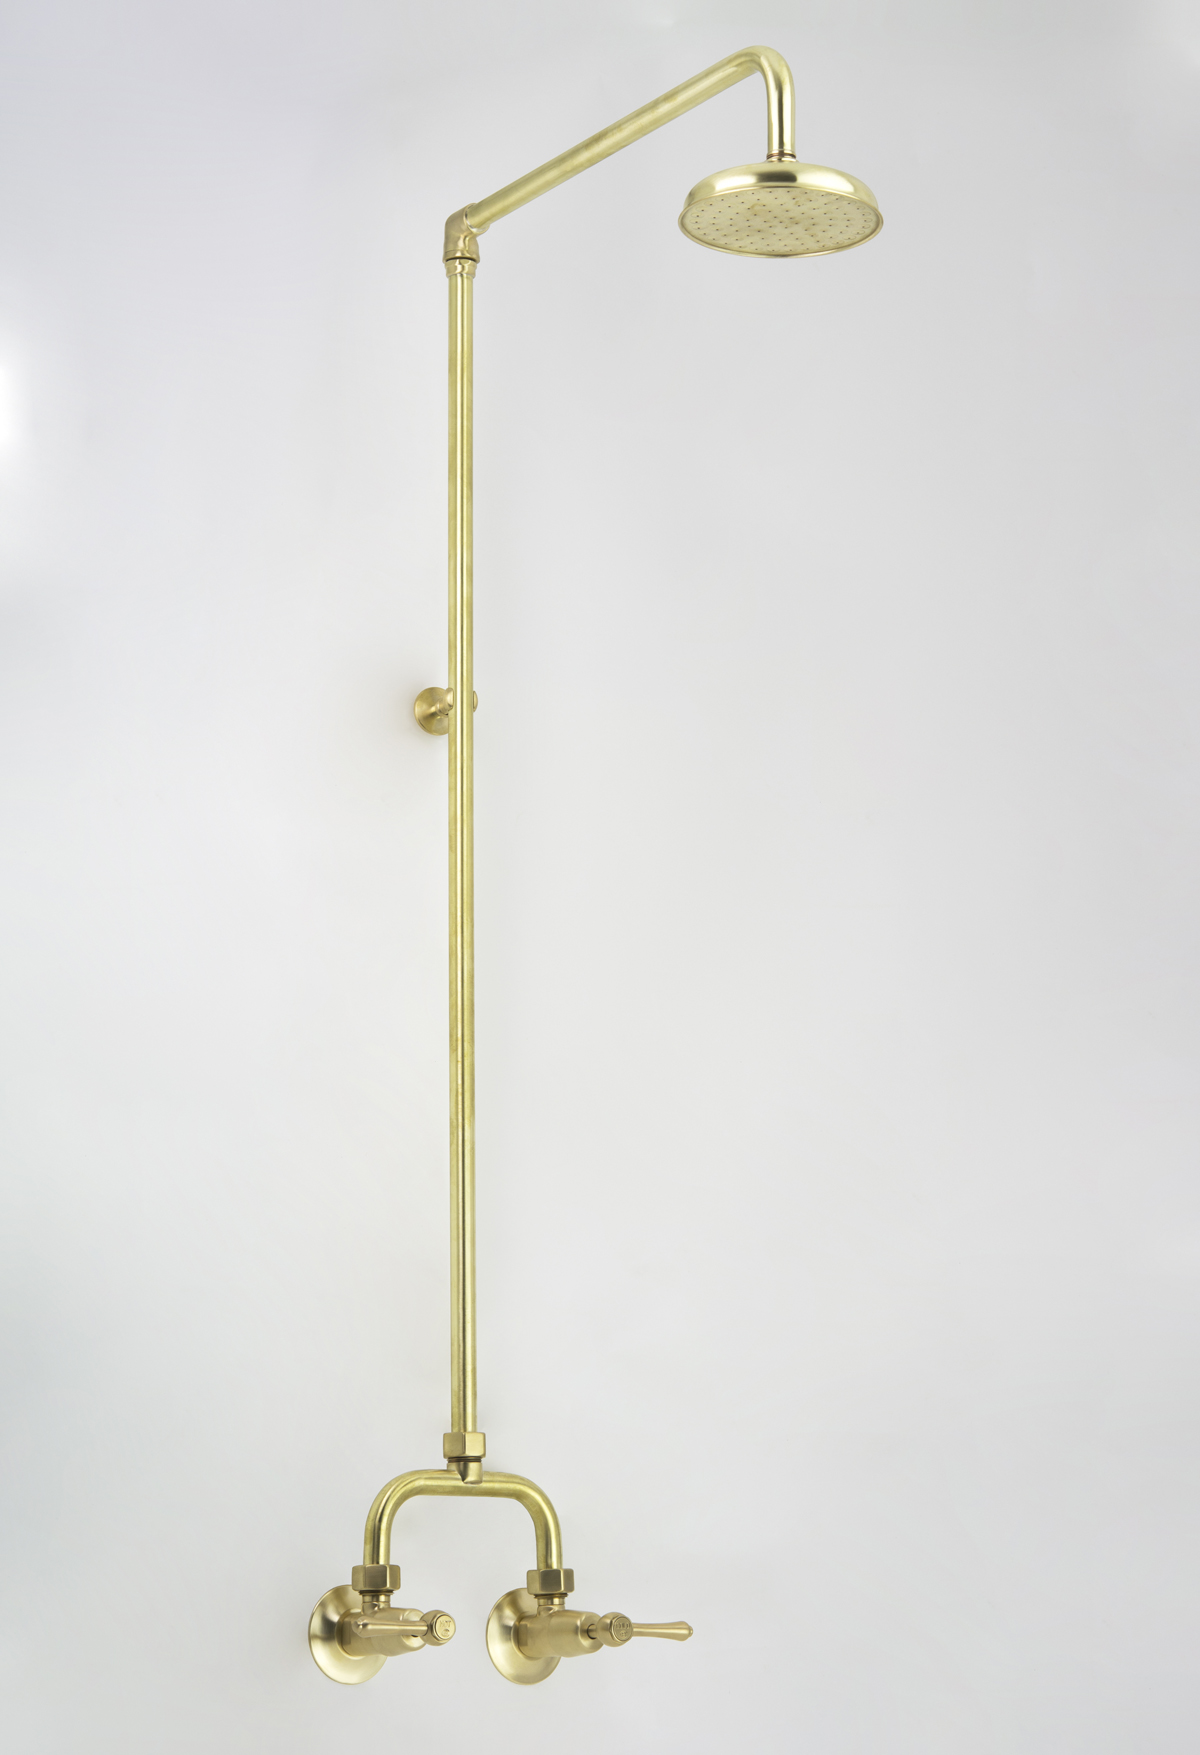 Roulette Lever Alcove Shower Set in Lea Wheeled Brass with Engraved Button Upgrade immediately after manufacture